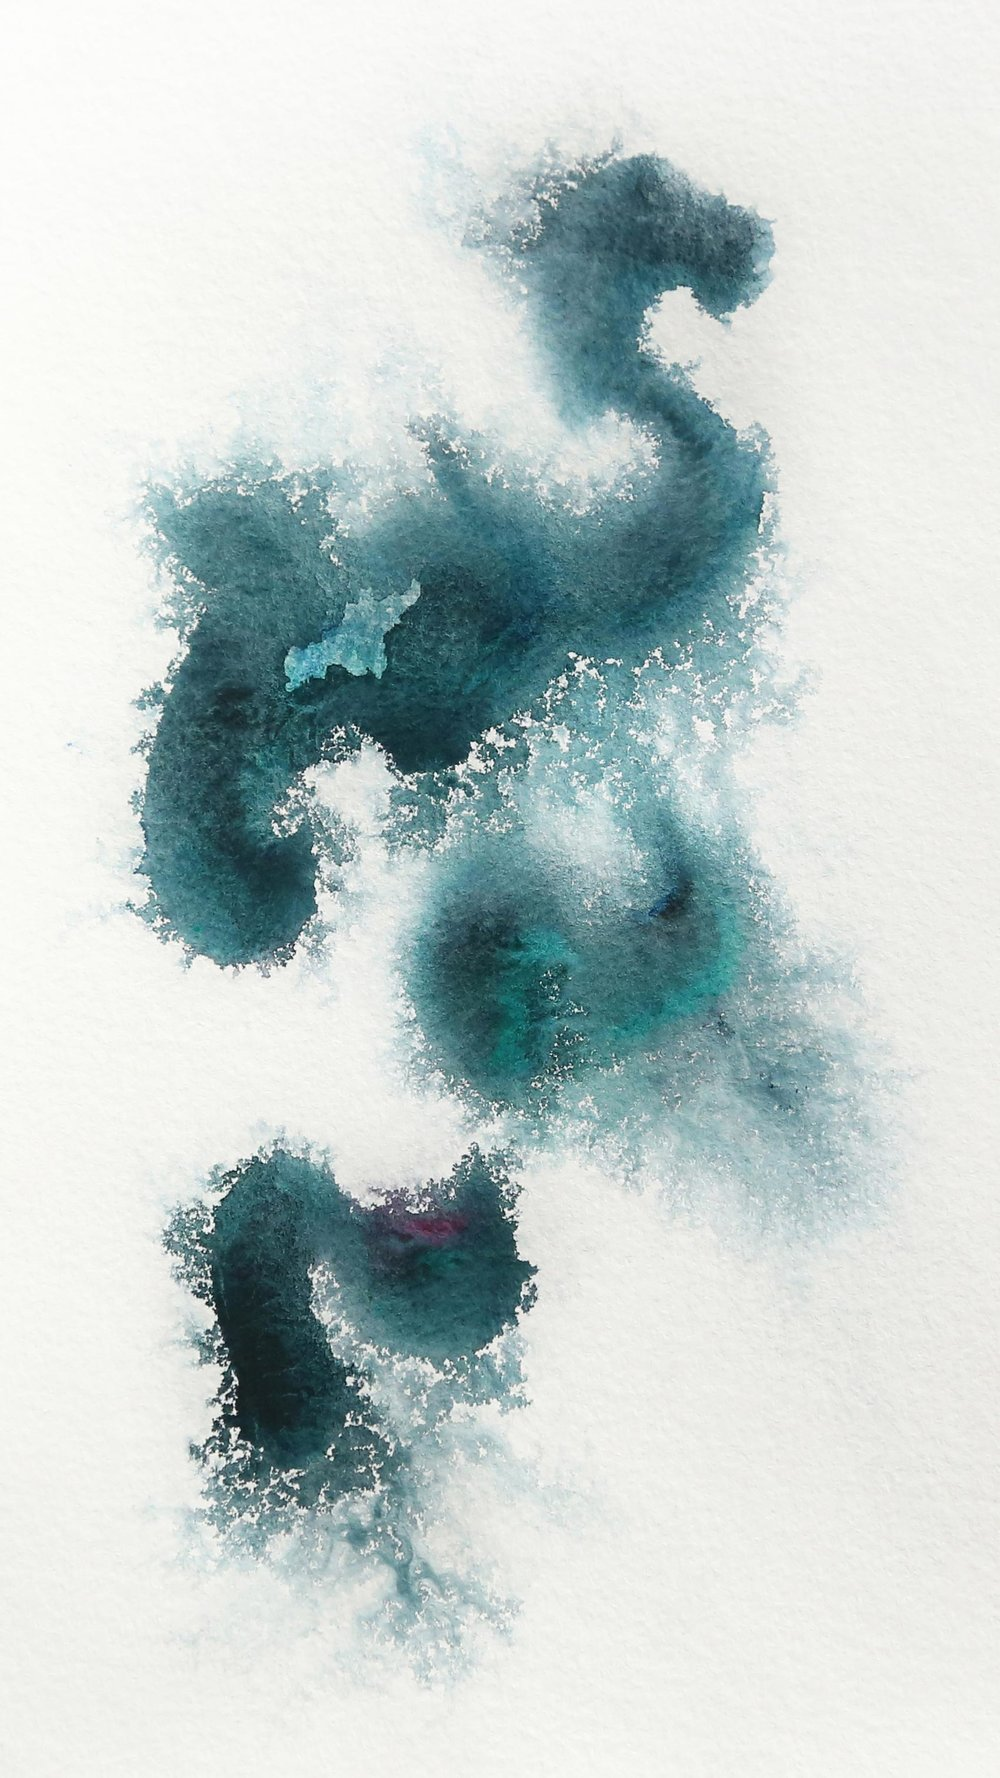 Silk, strands, 2016. Watercolor on Paper, 6x12